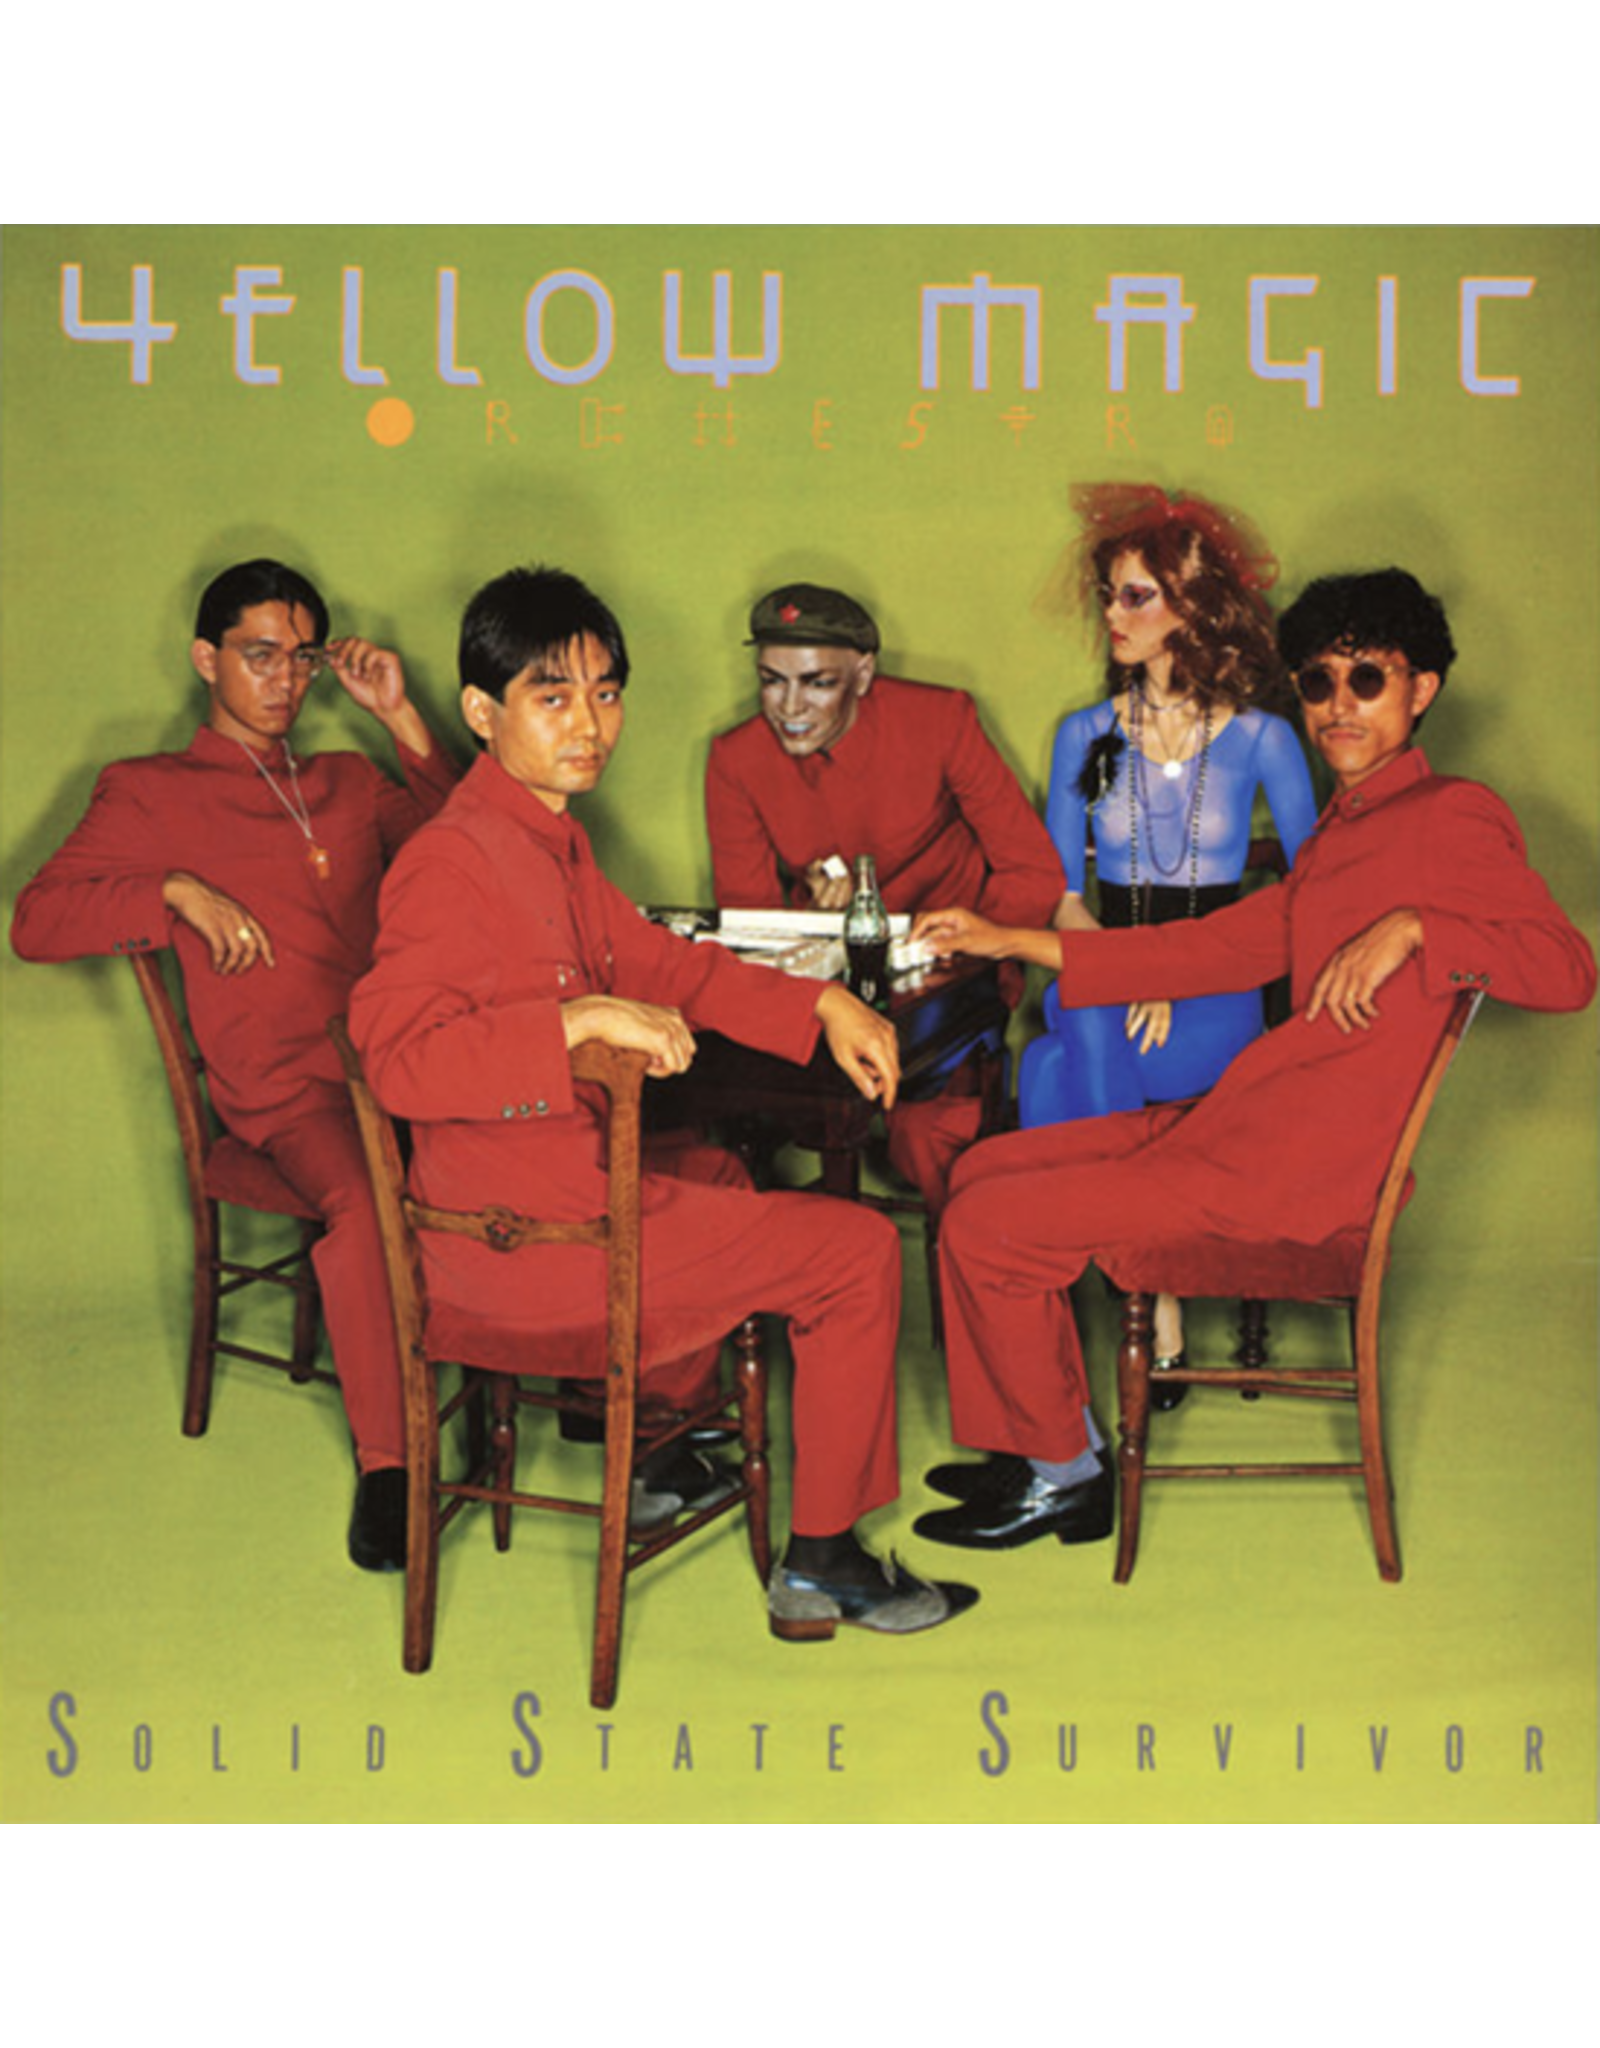 Great Tracks Yellow Magic Orchestra: Solid State Survivor (Colour) LP